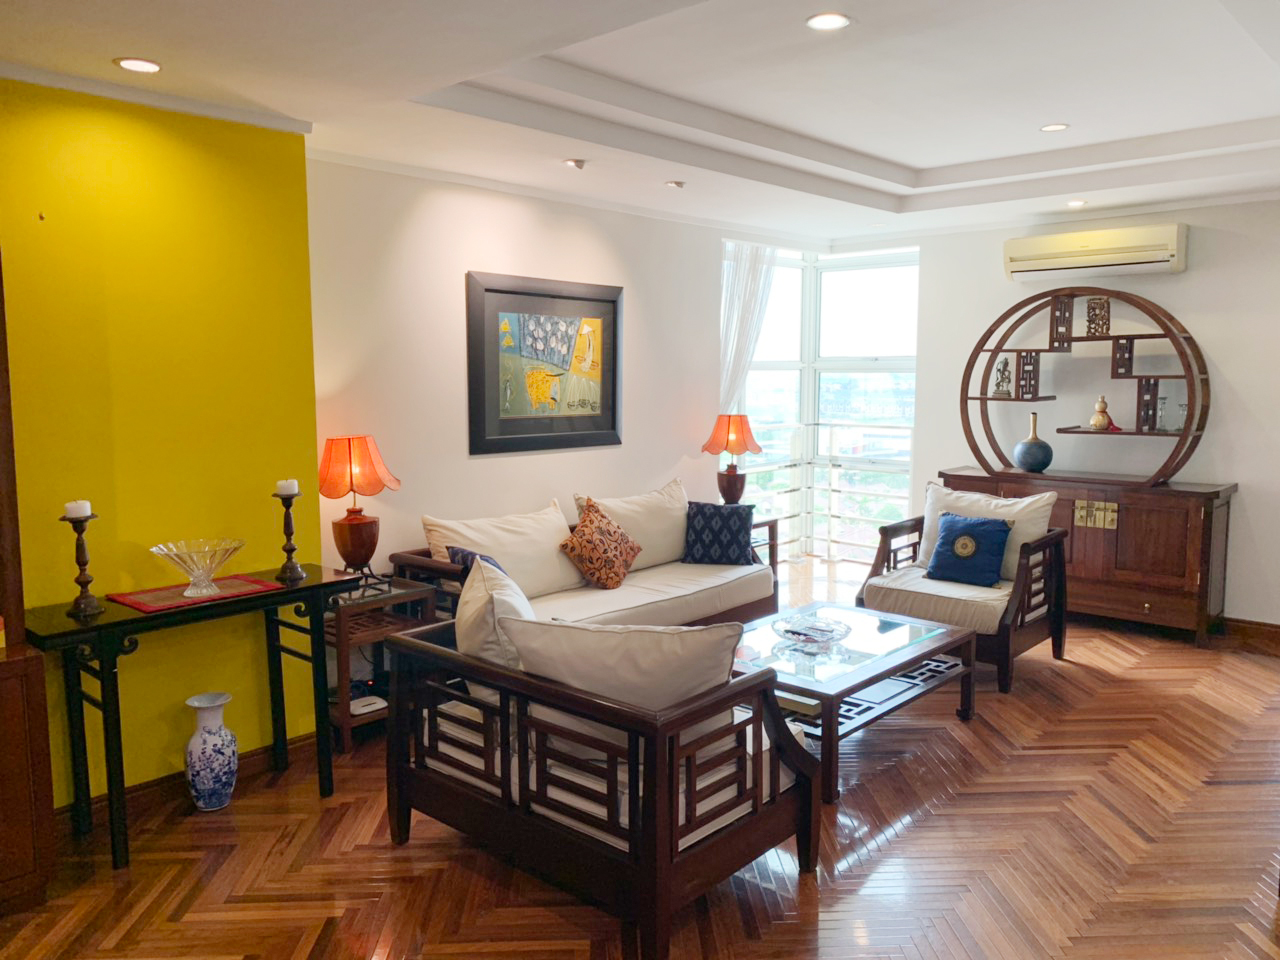 Charming 3 BR apartment with cozy design in G2 tower, Ciputra Hanoi 1